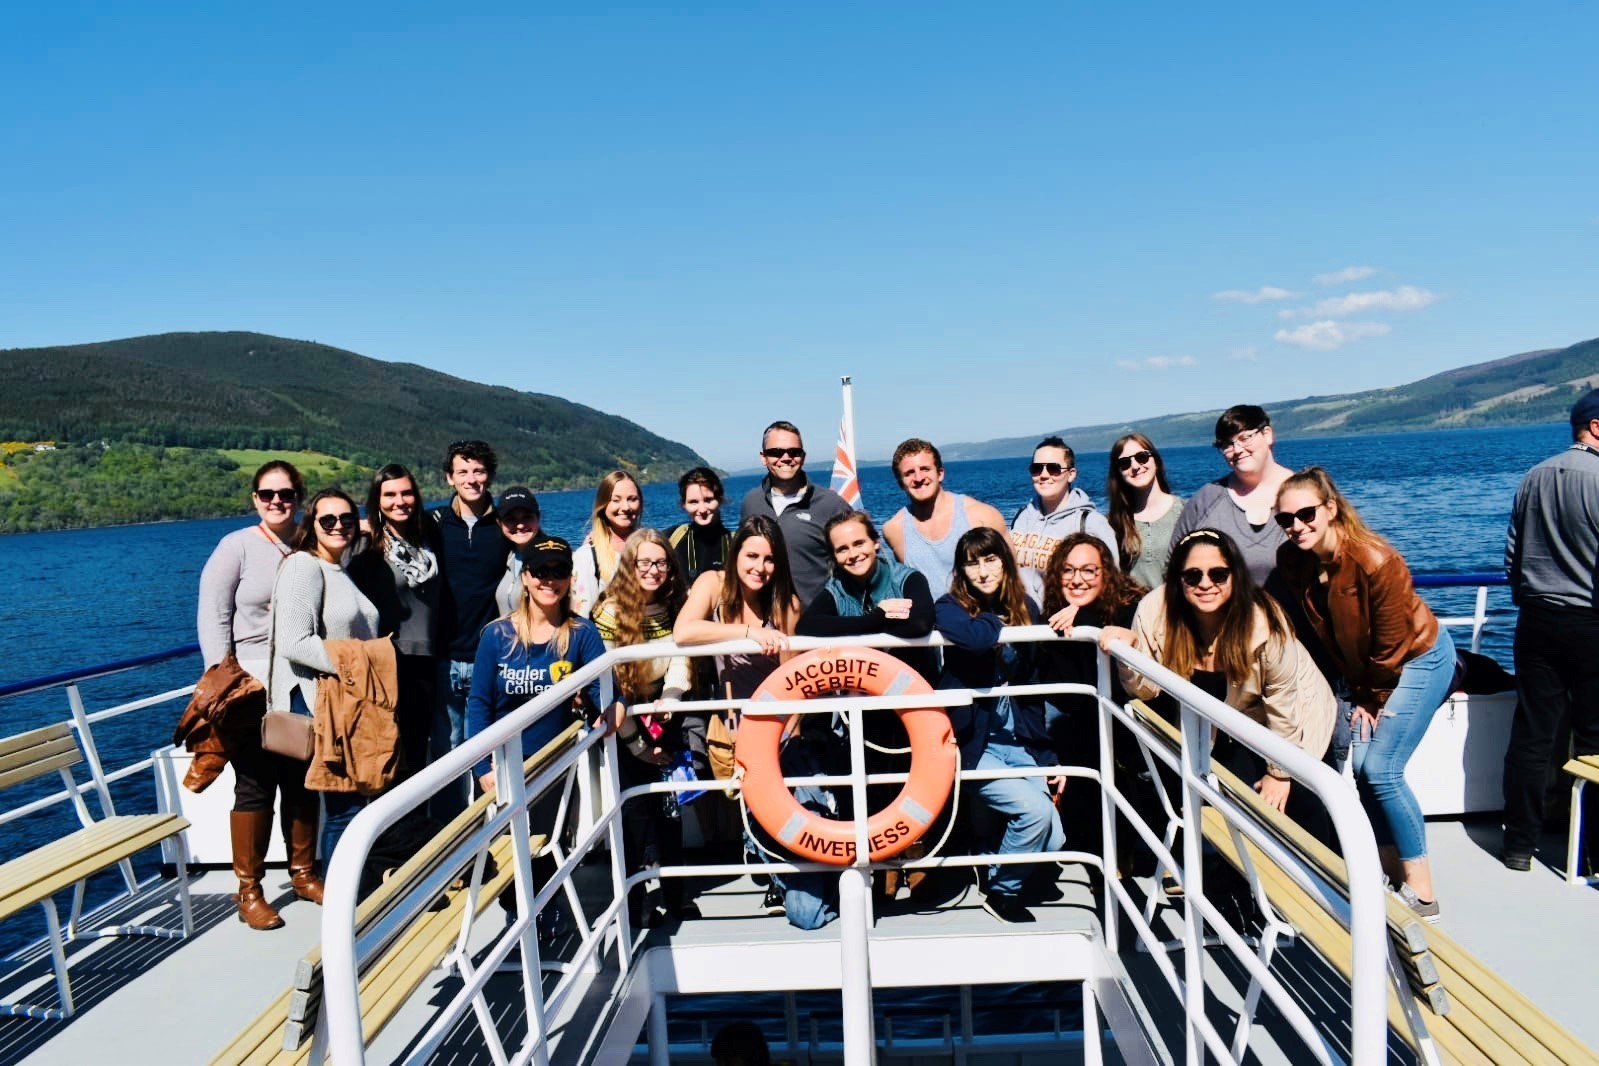 Students from Flagler College visit Loch Ness